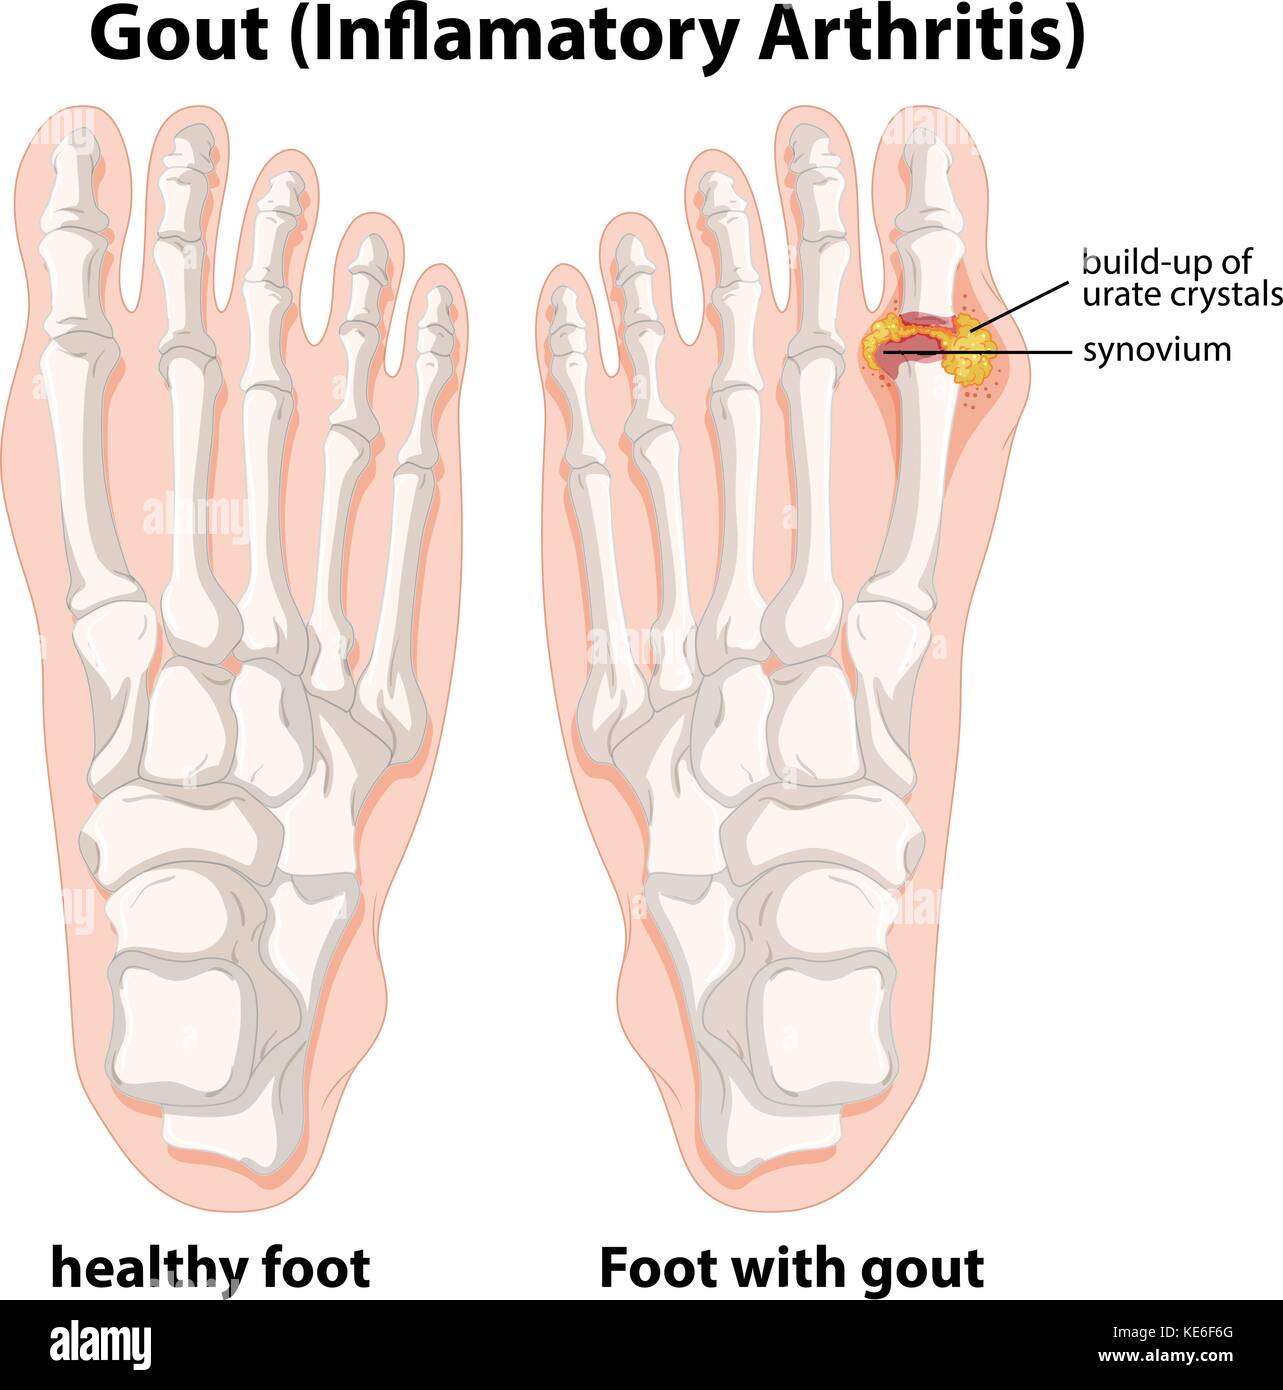 Gout In Foot Diagram With The Bones Of The Block And Schematic